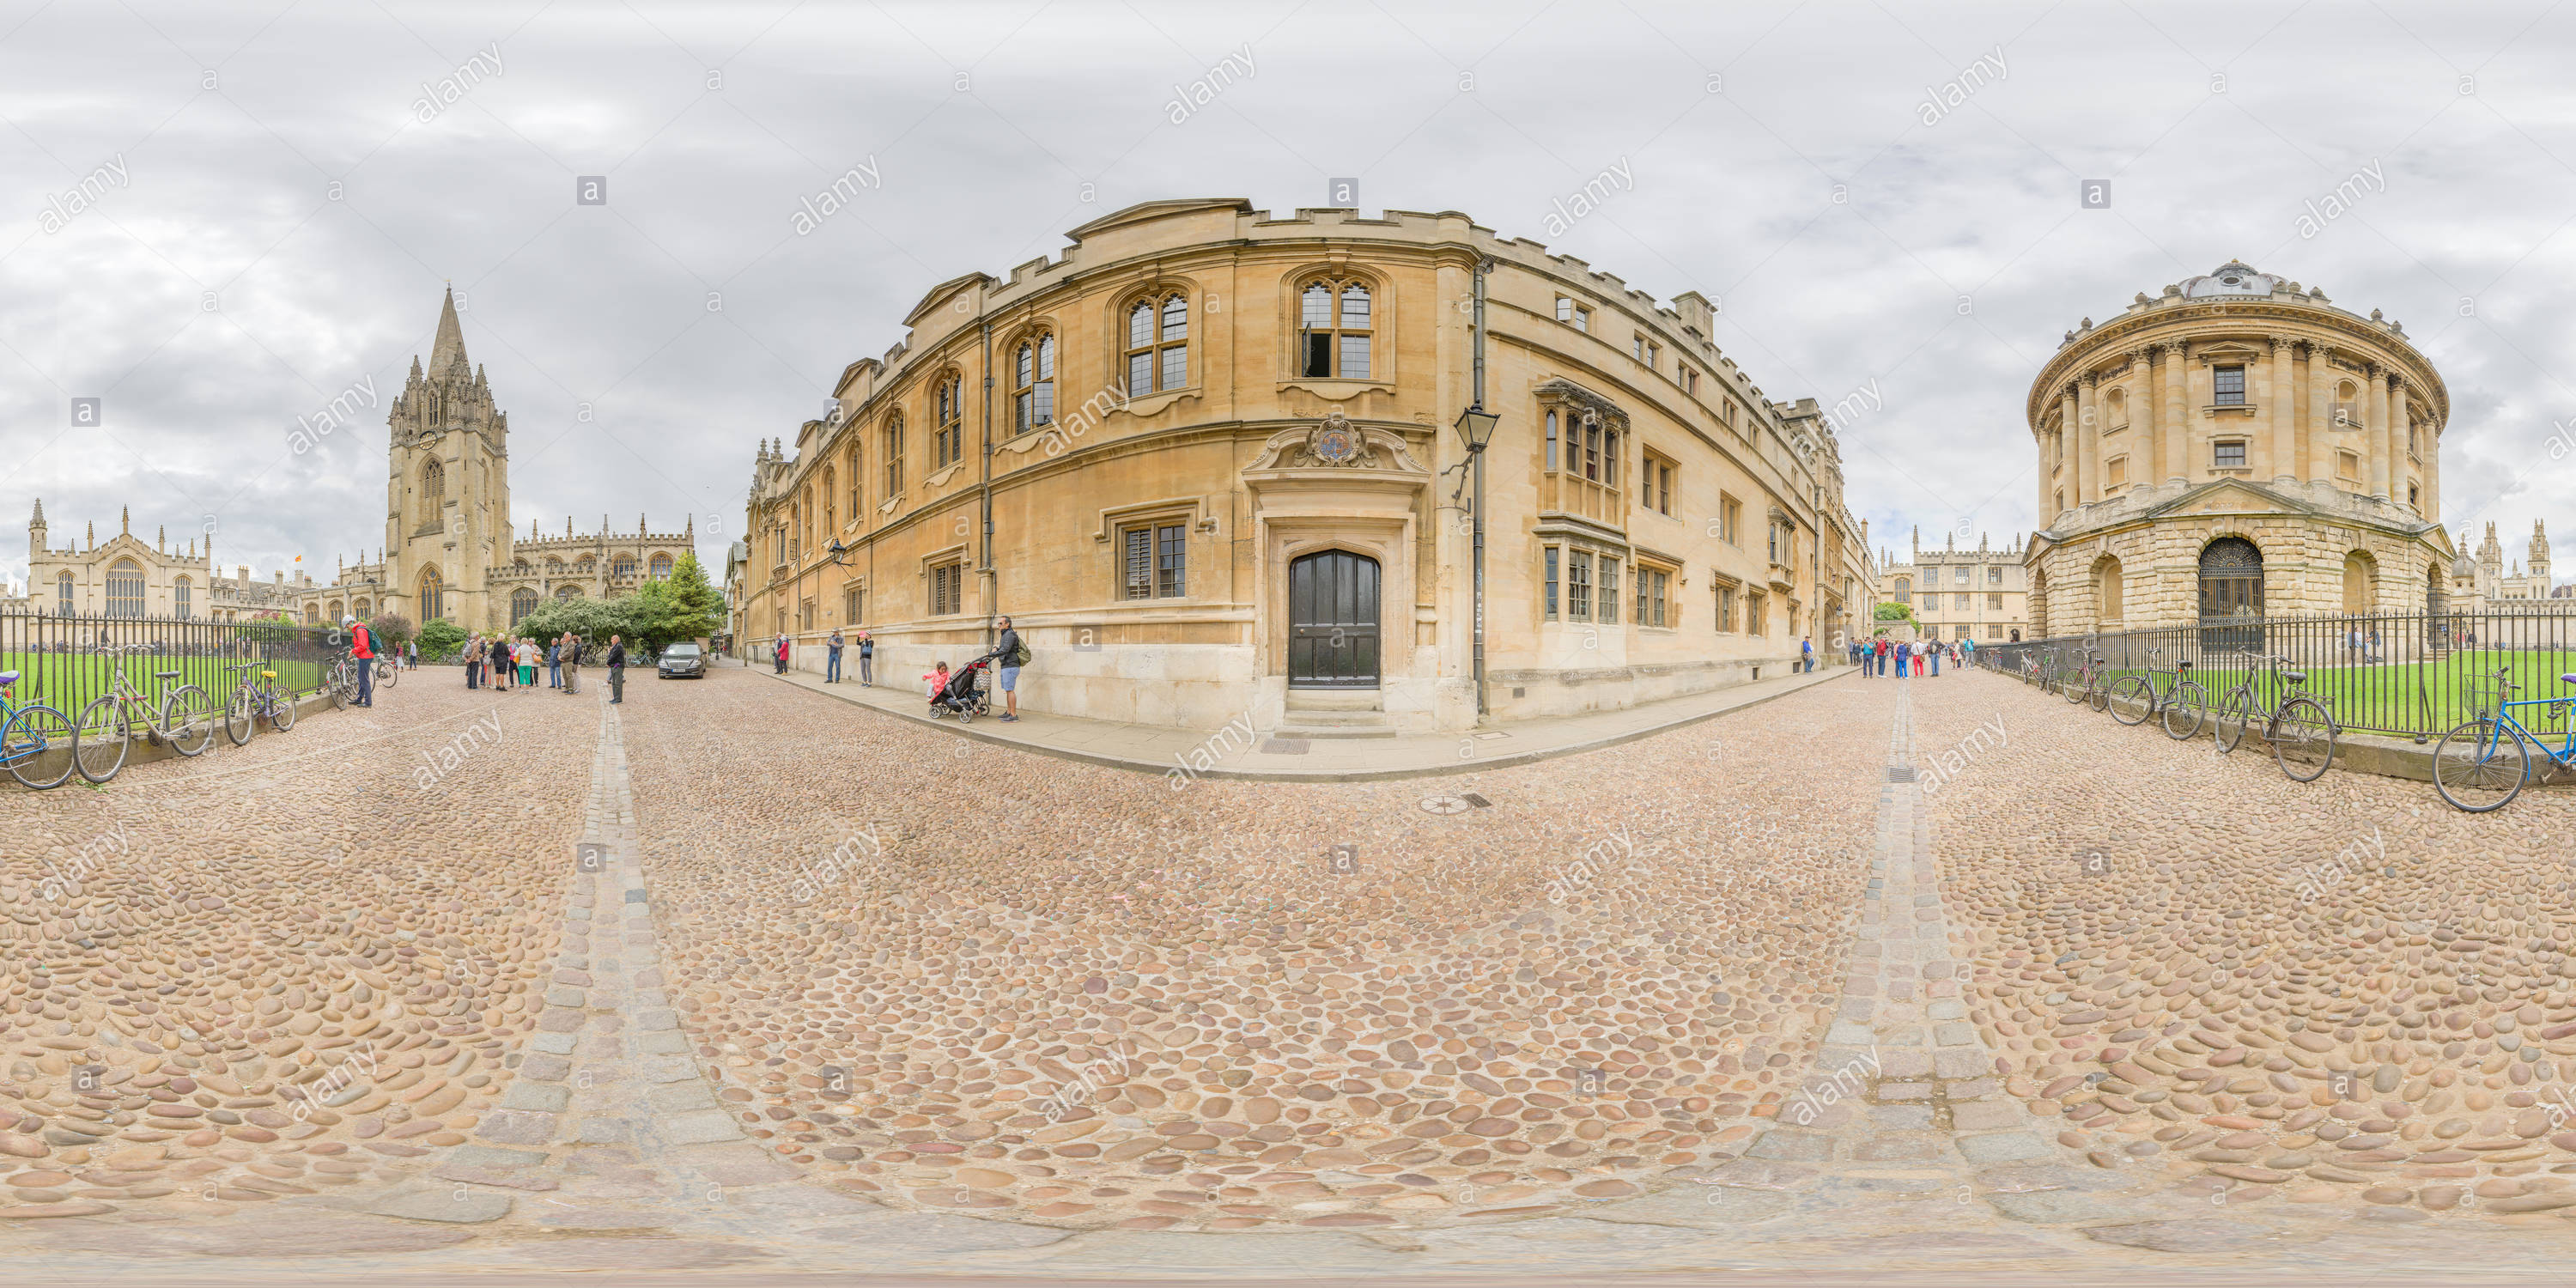 Side entrance and exterior facade of Brasenose college, Oxford university, opposite the Radcliffe Camera and the Bodliean library, and next to St Mary - Stock Image